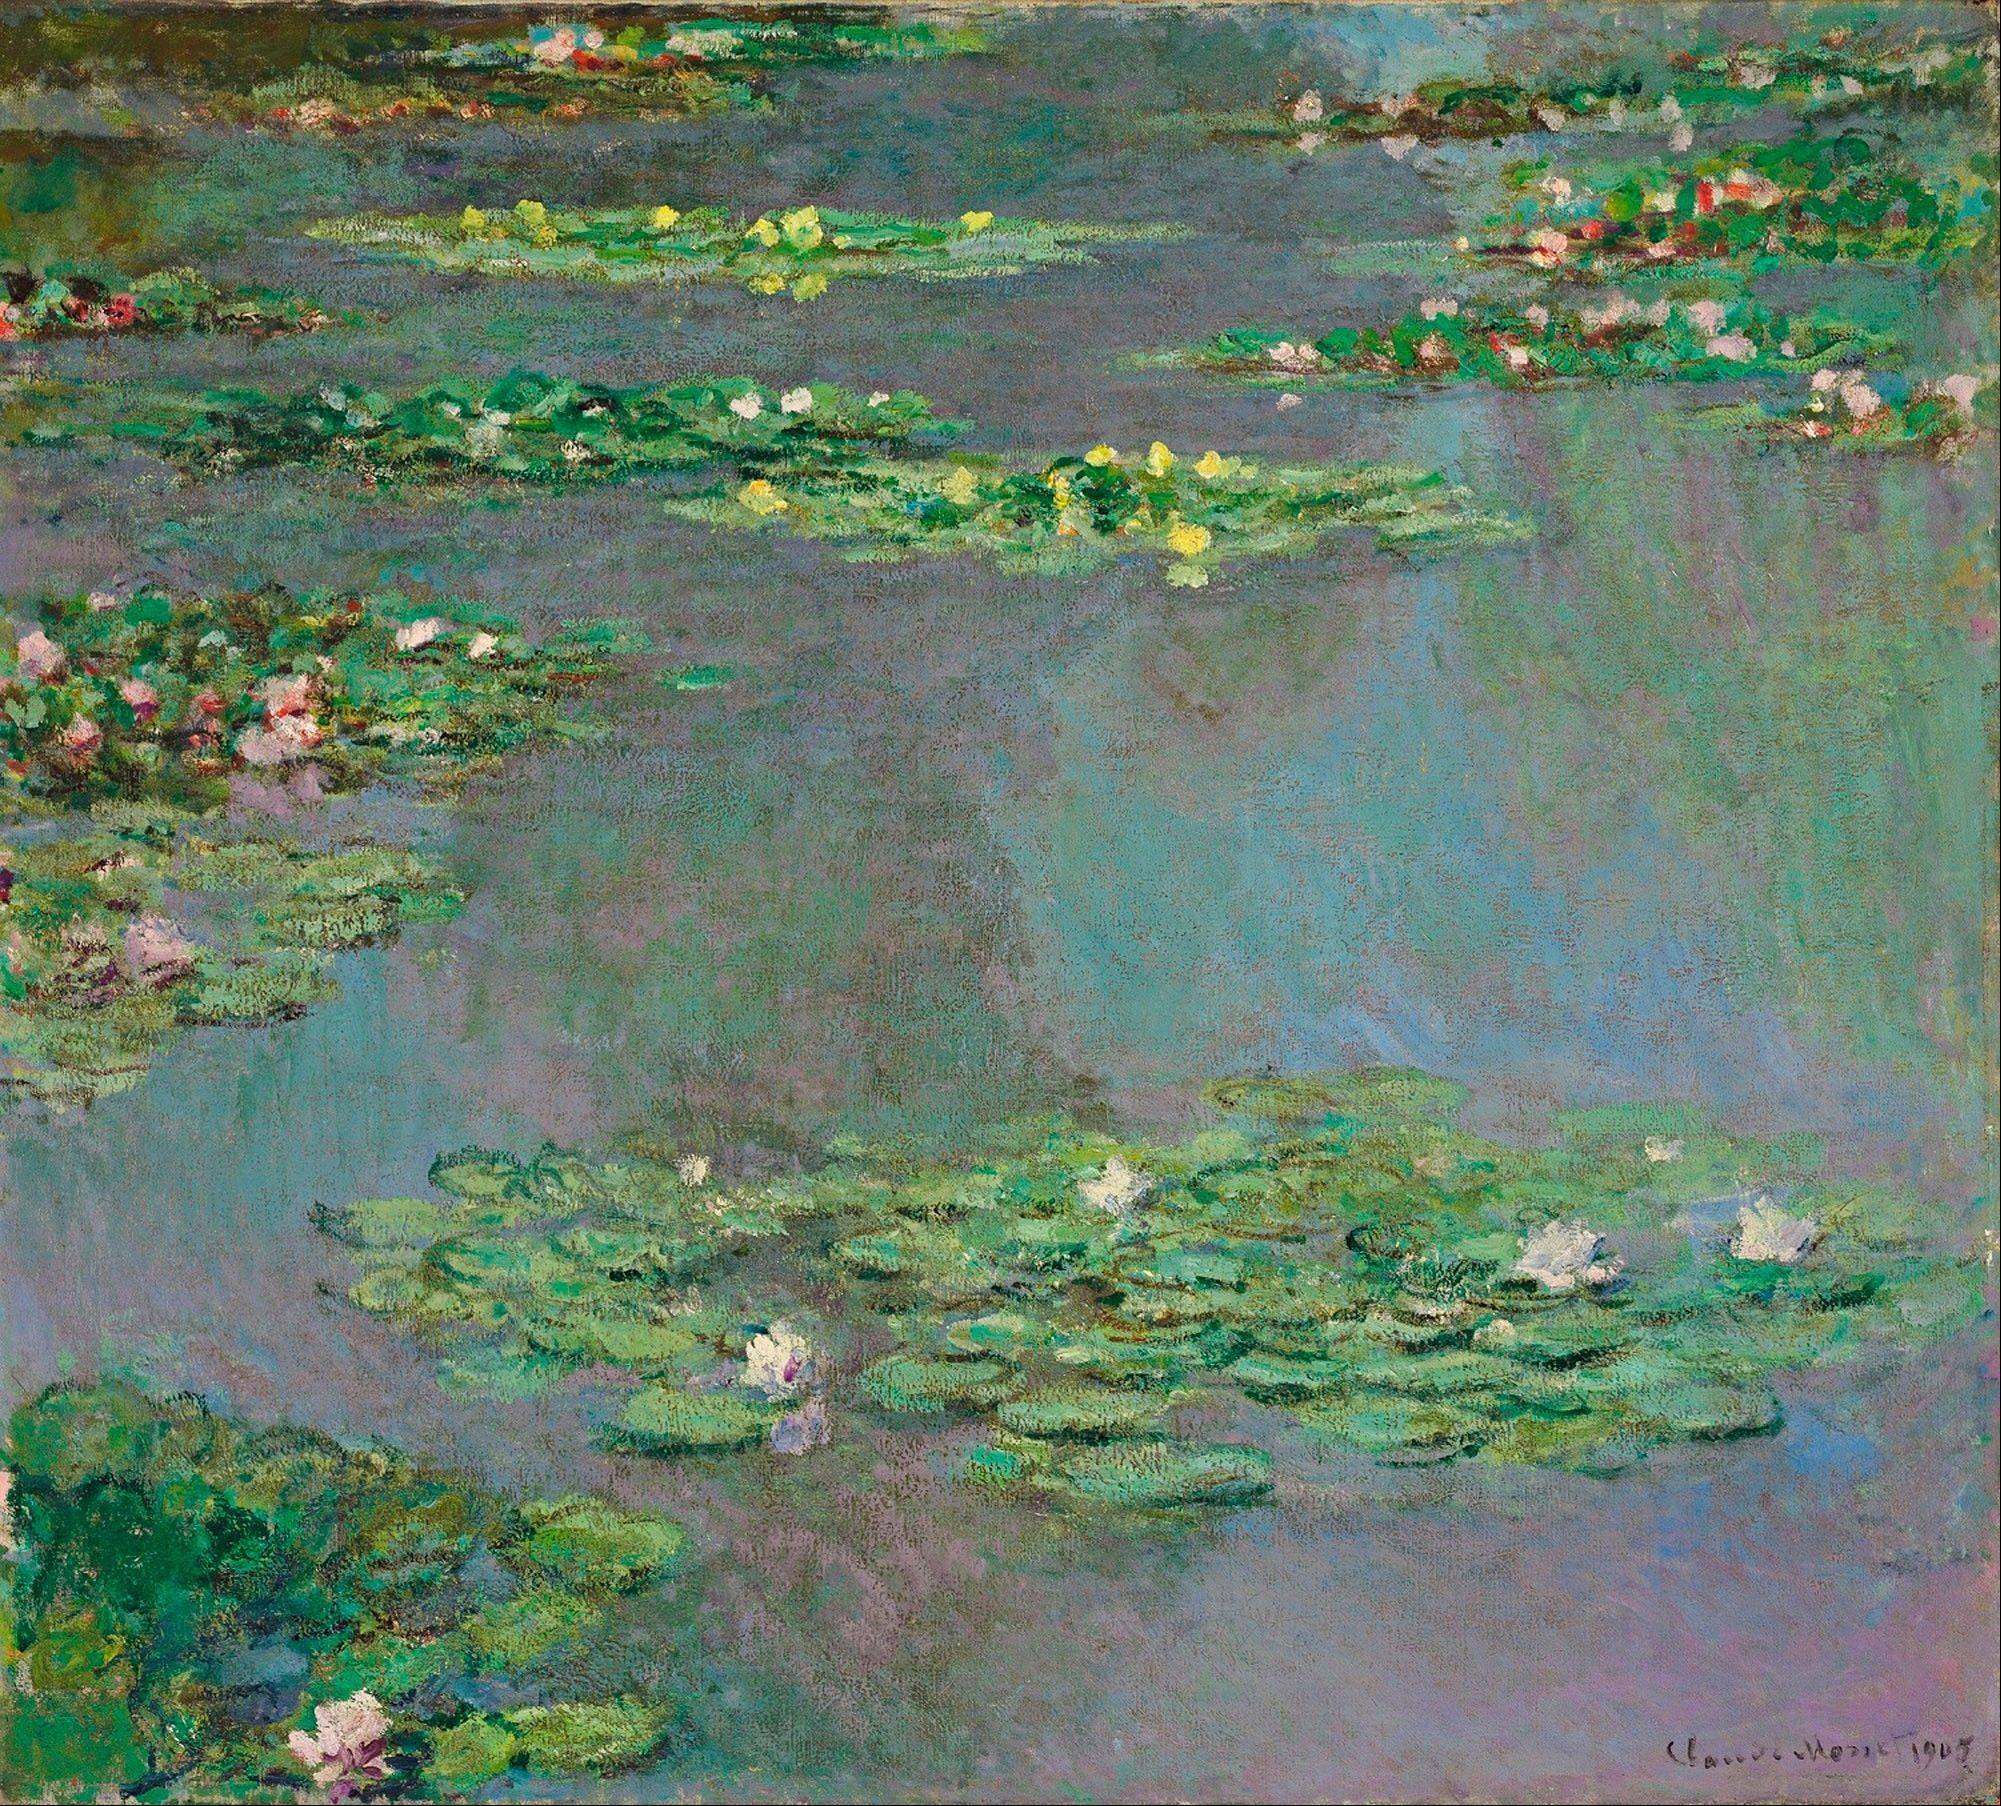 "This image provided by Christie's Images, Ltd, in New York, Friday Nov. 9, 2012, shows a work from Claude Monet's ""Water Lilies"" series. The painting is from the estate of Ethel Strong Allen, widow of Wall Street executive Herbert Allen Sr., that she bequeathed to a suburban boarding school, was sold Wednesday for more than $43-million at Christie's Evening Sale of Impressionist & Modern Art."